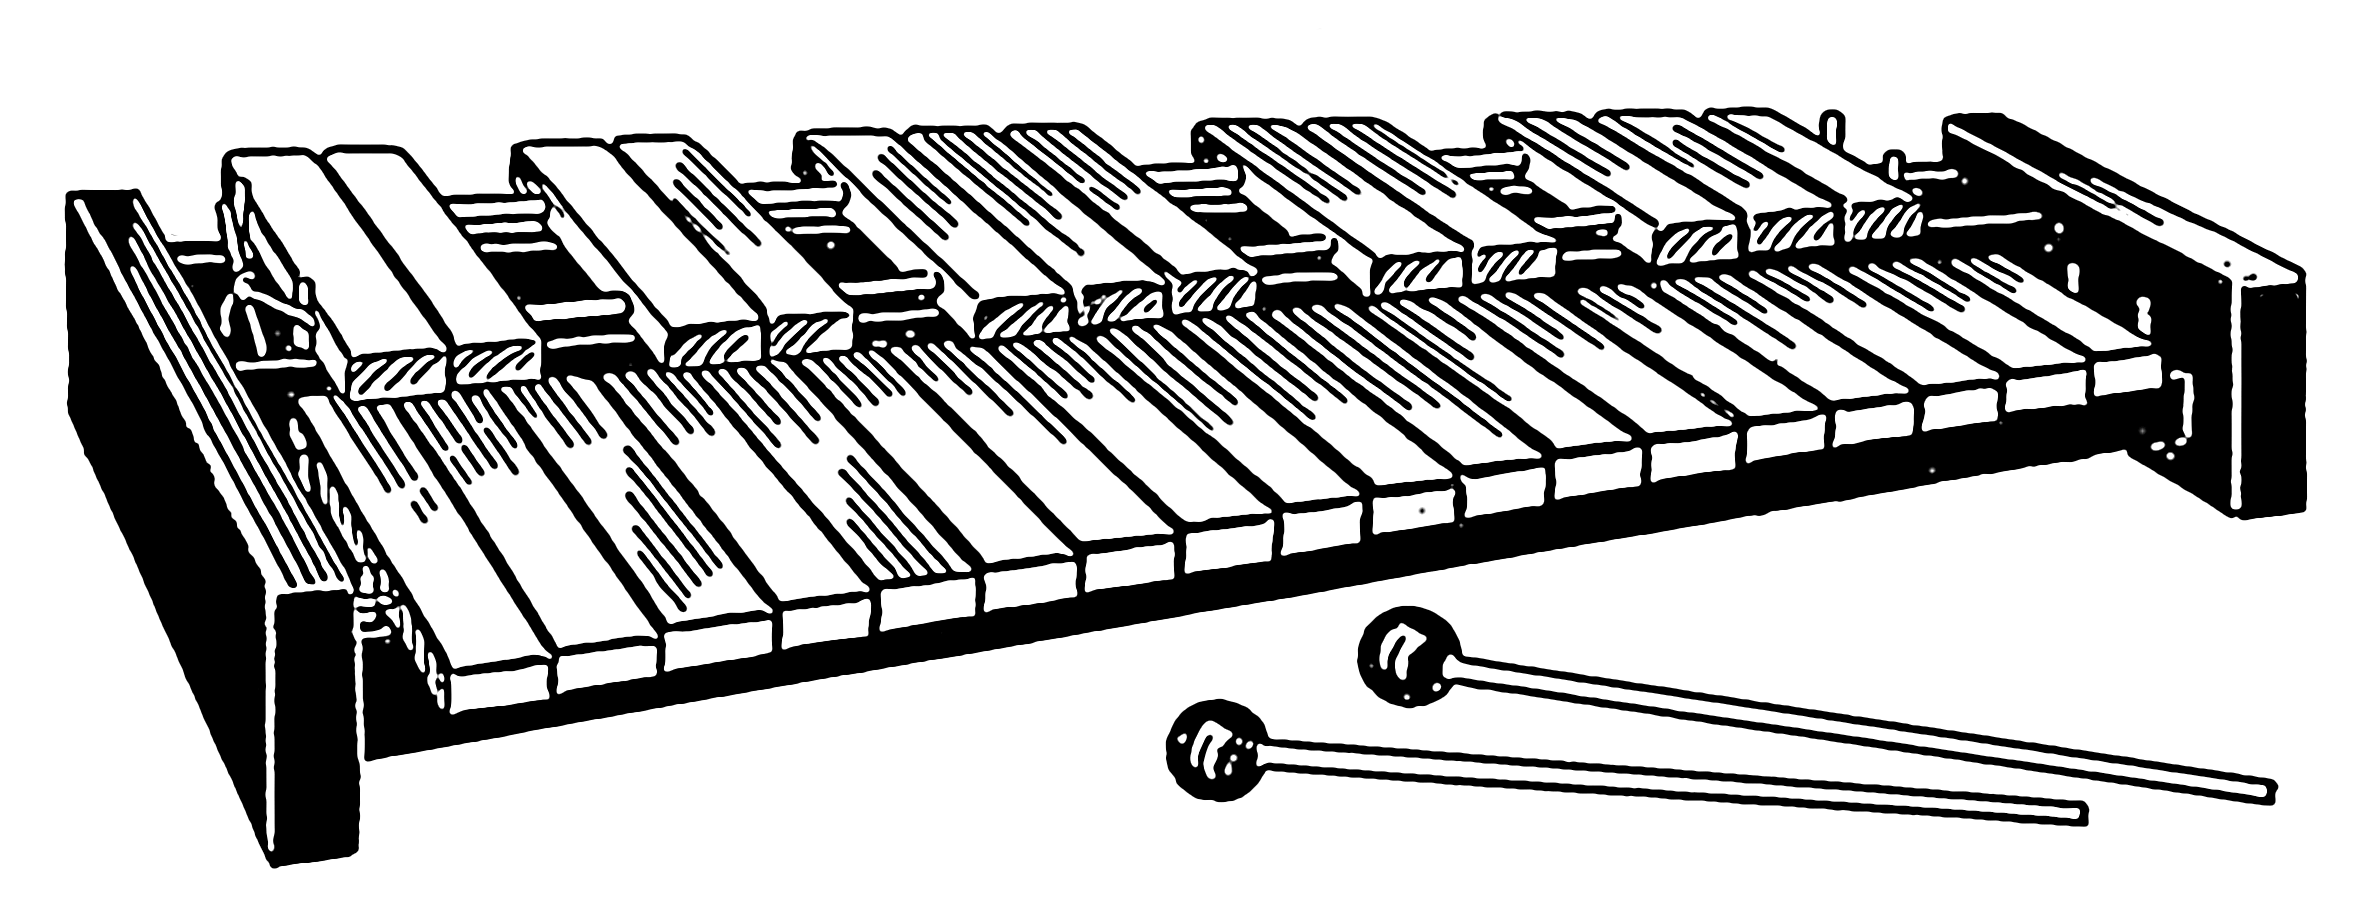 File:Xylophone (PSF).png - Xylophone PNG